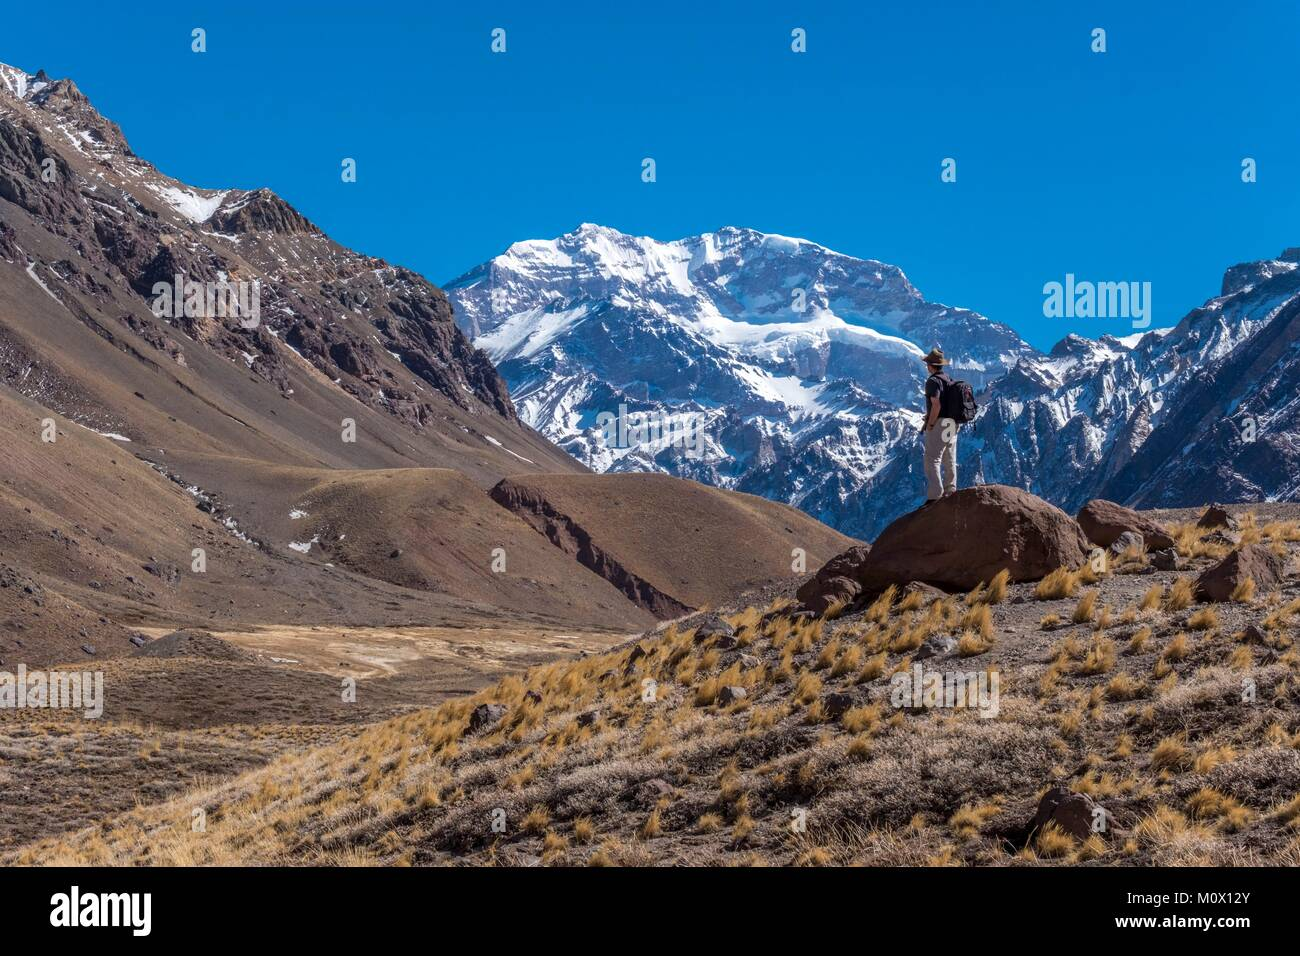 Argentina,Mendoza province,Aconcagua Pronvicial Park,Mt Aconcagua (6692m tallest mountain outside the Himalayan - Stock Image